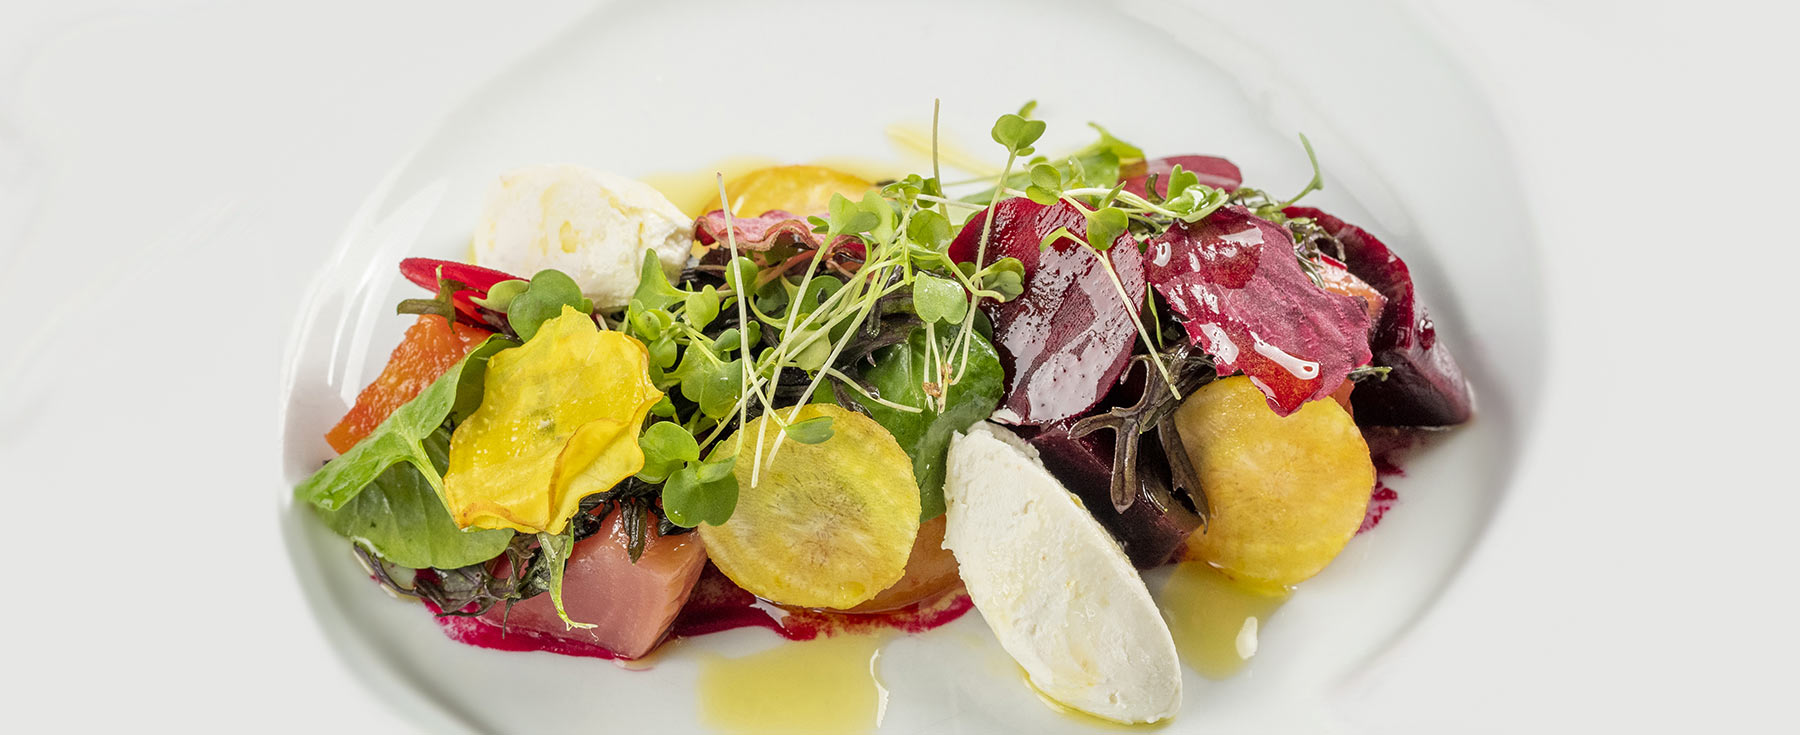 bacchus-now-open-beet-salad.jpg